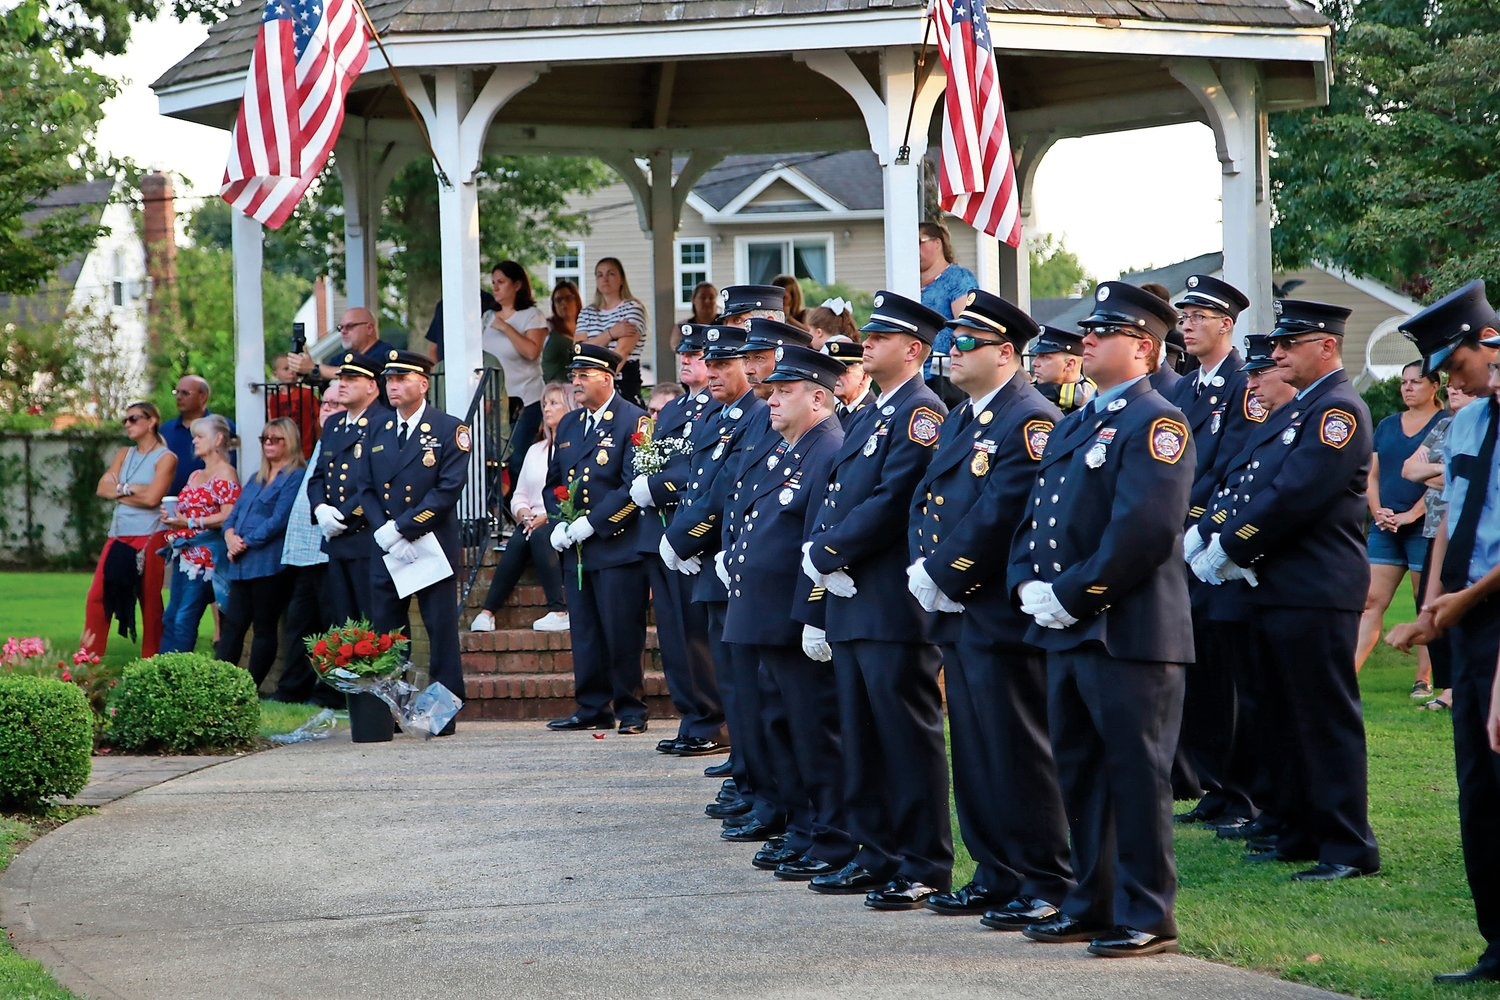 Members of the Franklin Square & Munson Fire Department listened as Ex-Chief John Novello and Chief John Salzman spoke about the lives lost in the Sept. 11 attacks.